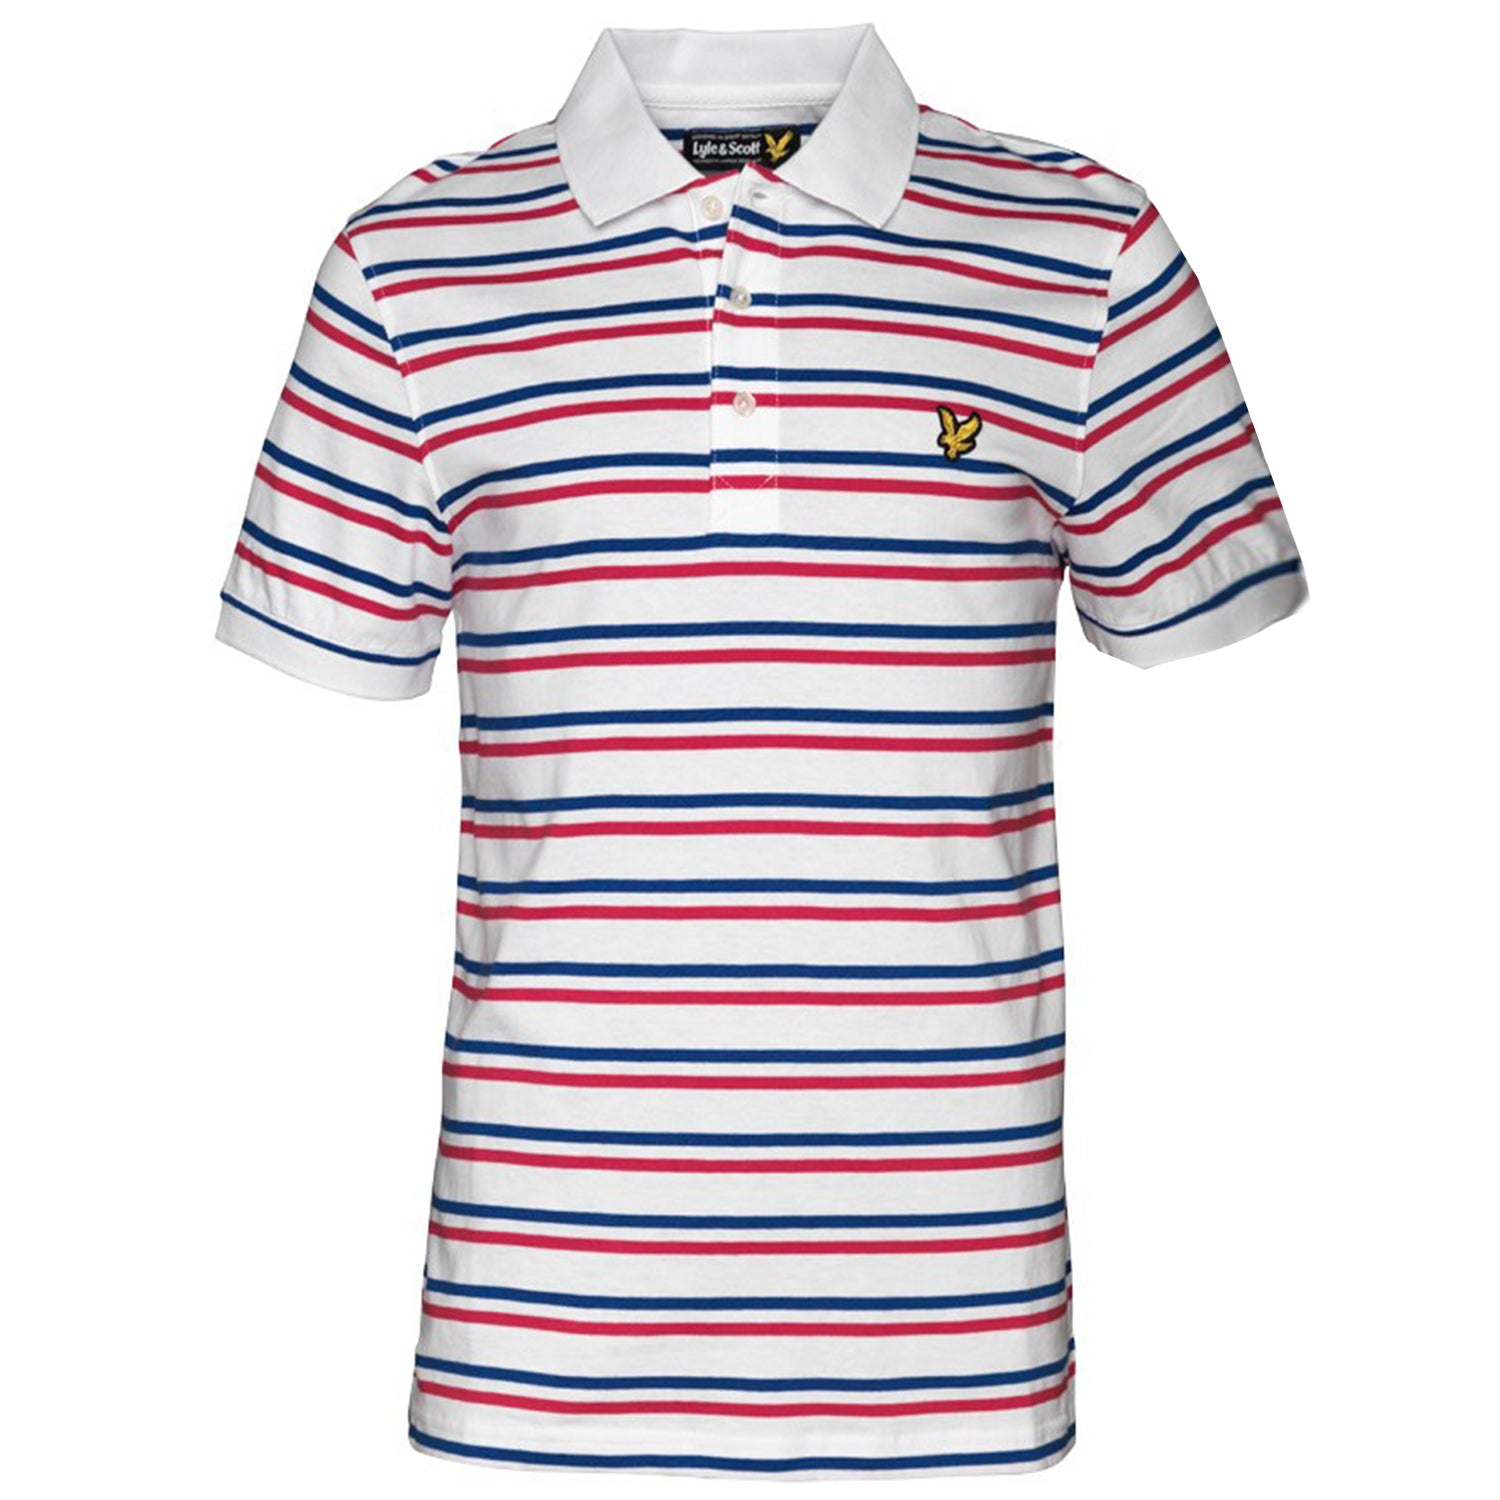 Lyle & Scott Jersey Tram Stripe Polo T-Shirt